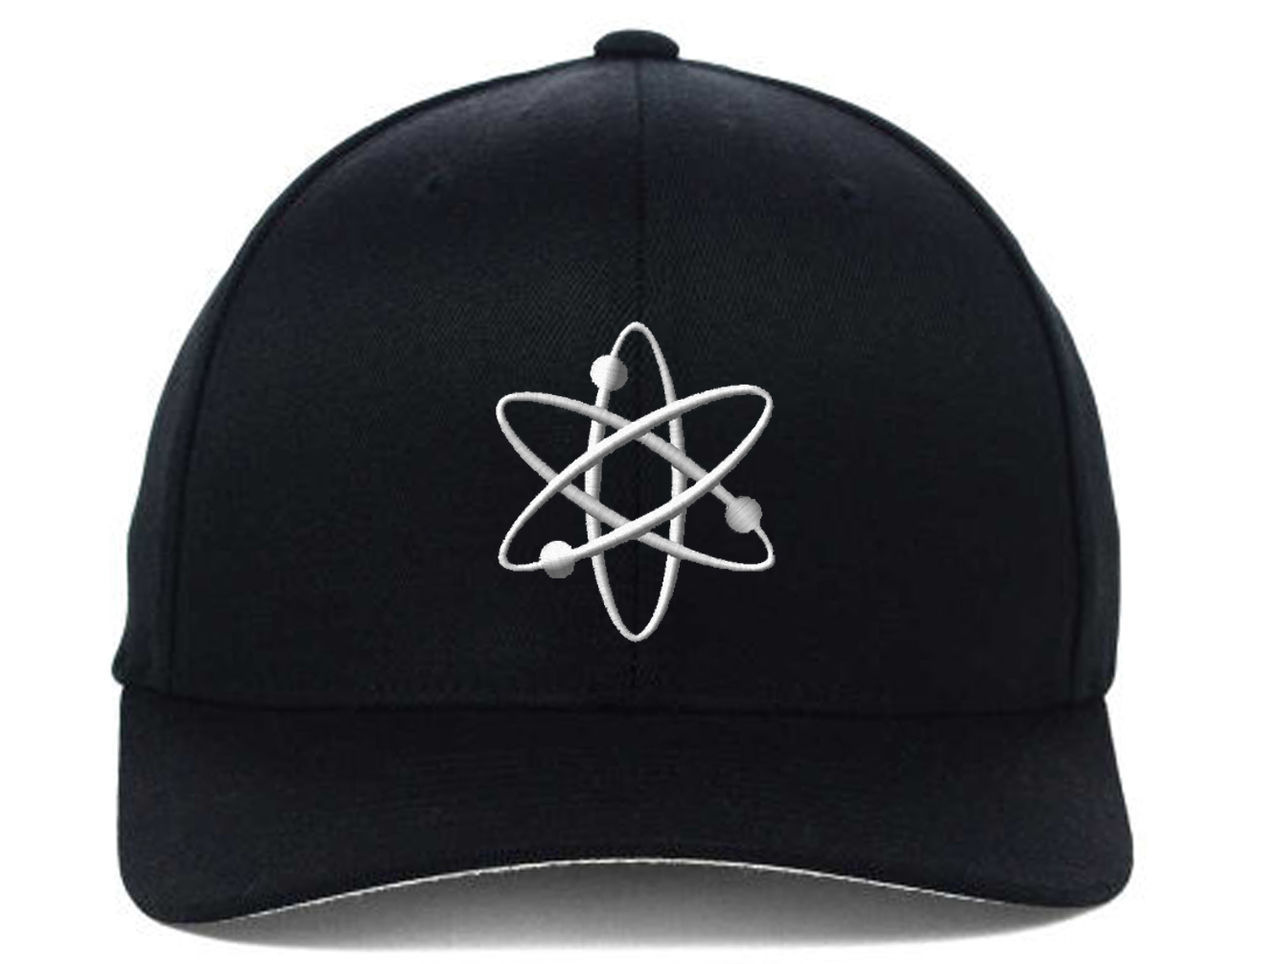 ATOM Atomic Energy Embroidered, Flexfit Hats